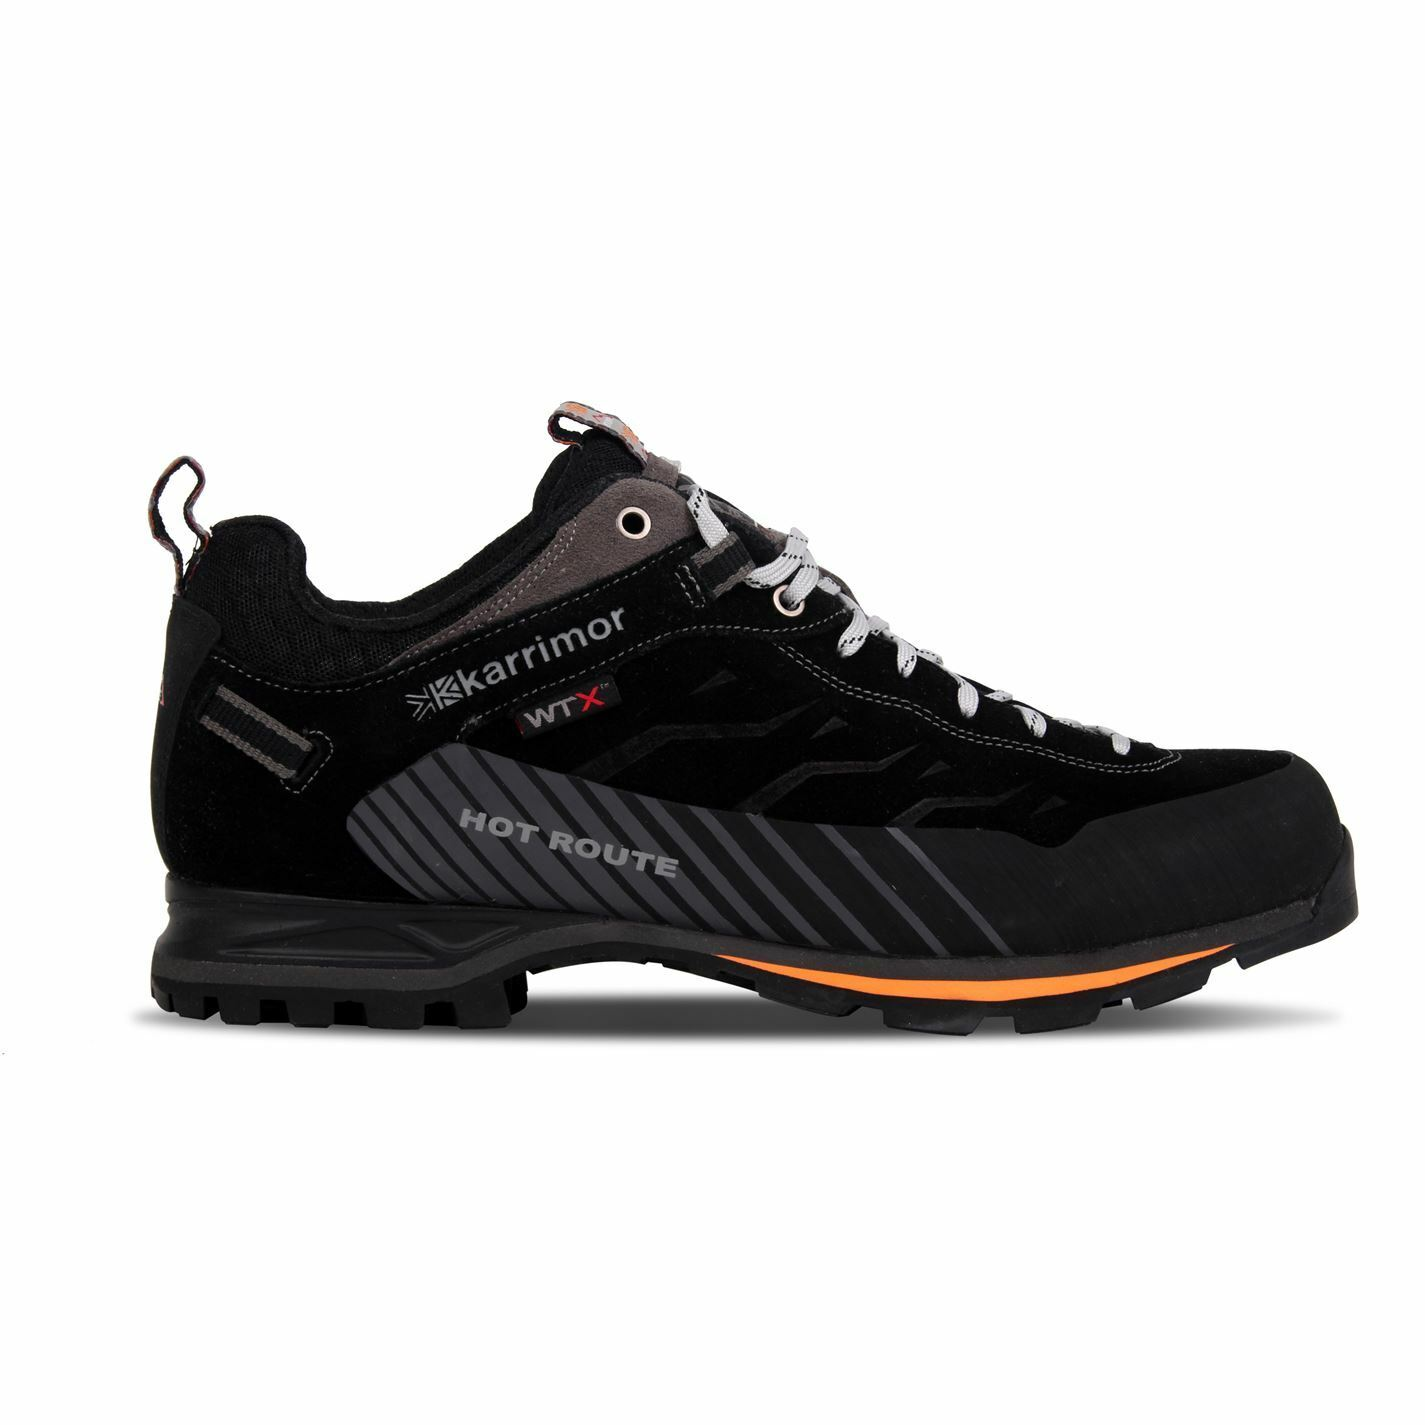 Karrimor Mens Hot Route Wtx  Walking shoes Waterproof Lace Up Breathable Leather  cost-effective